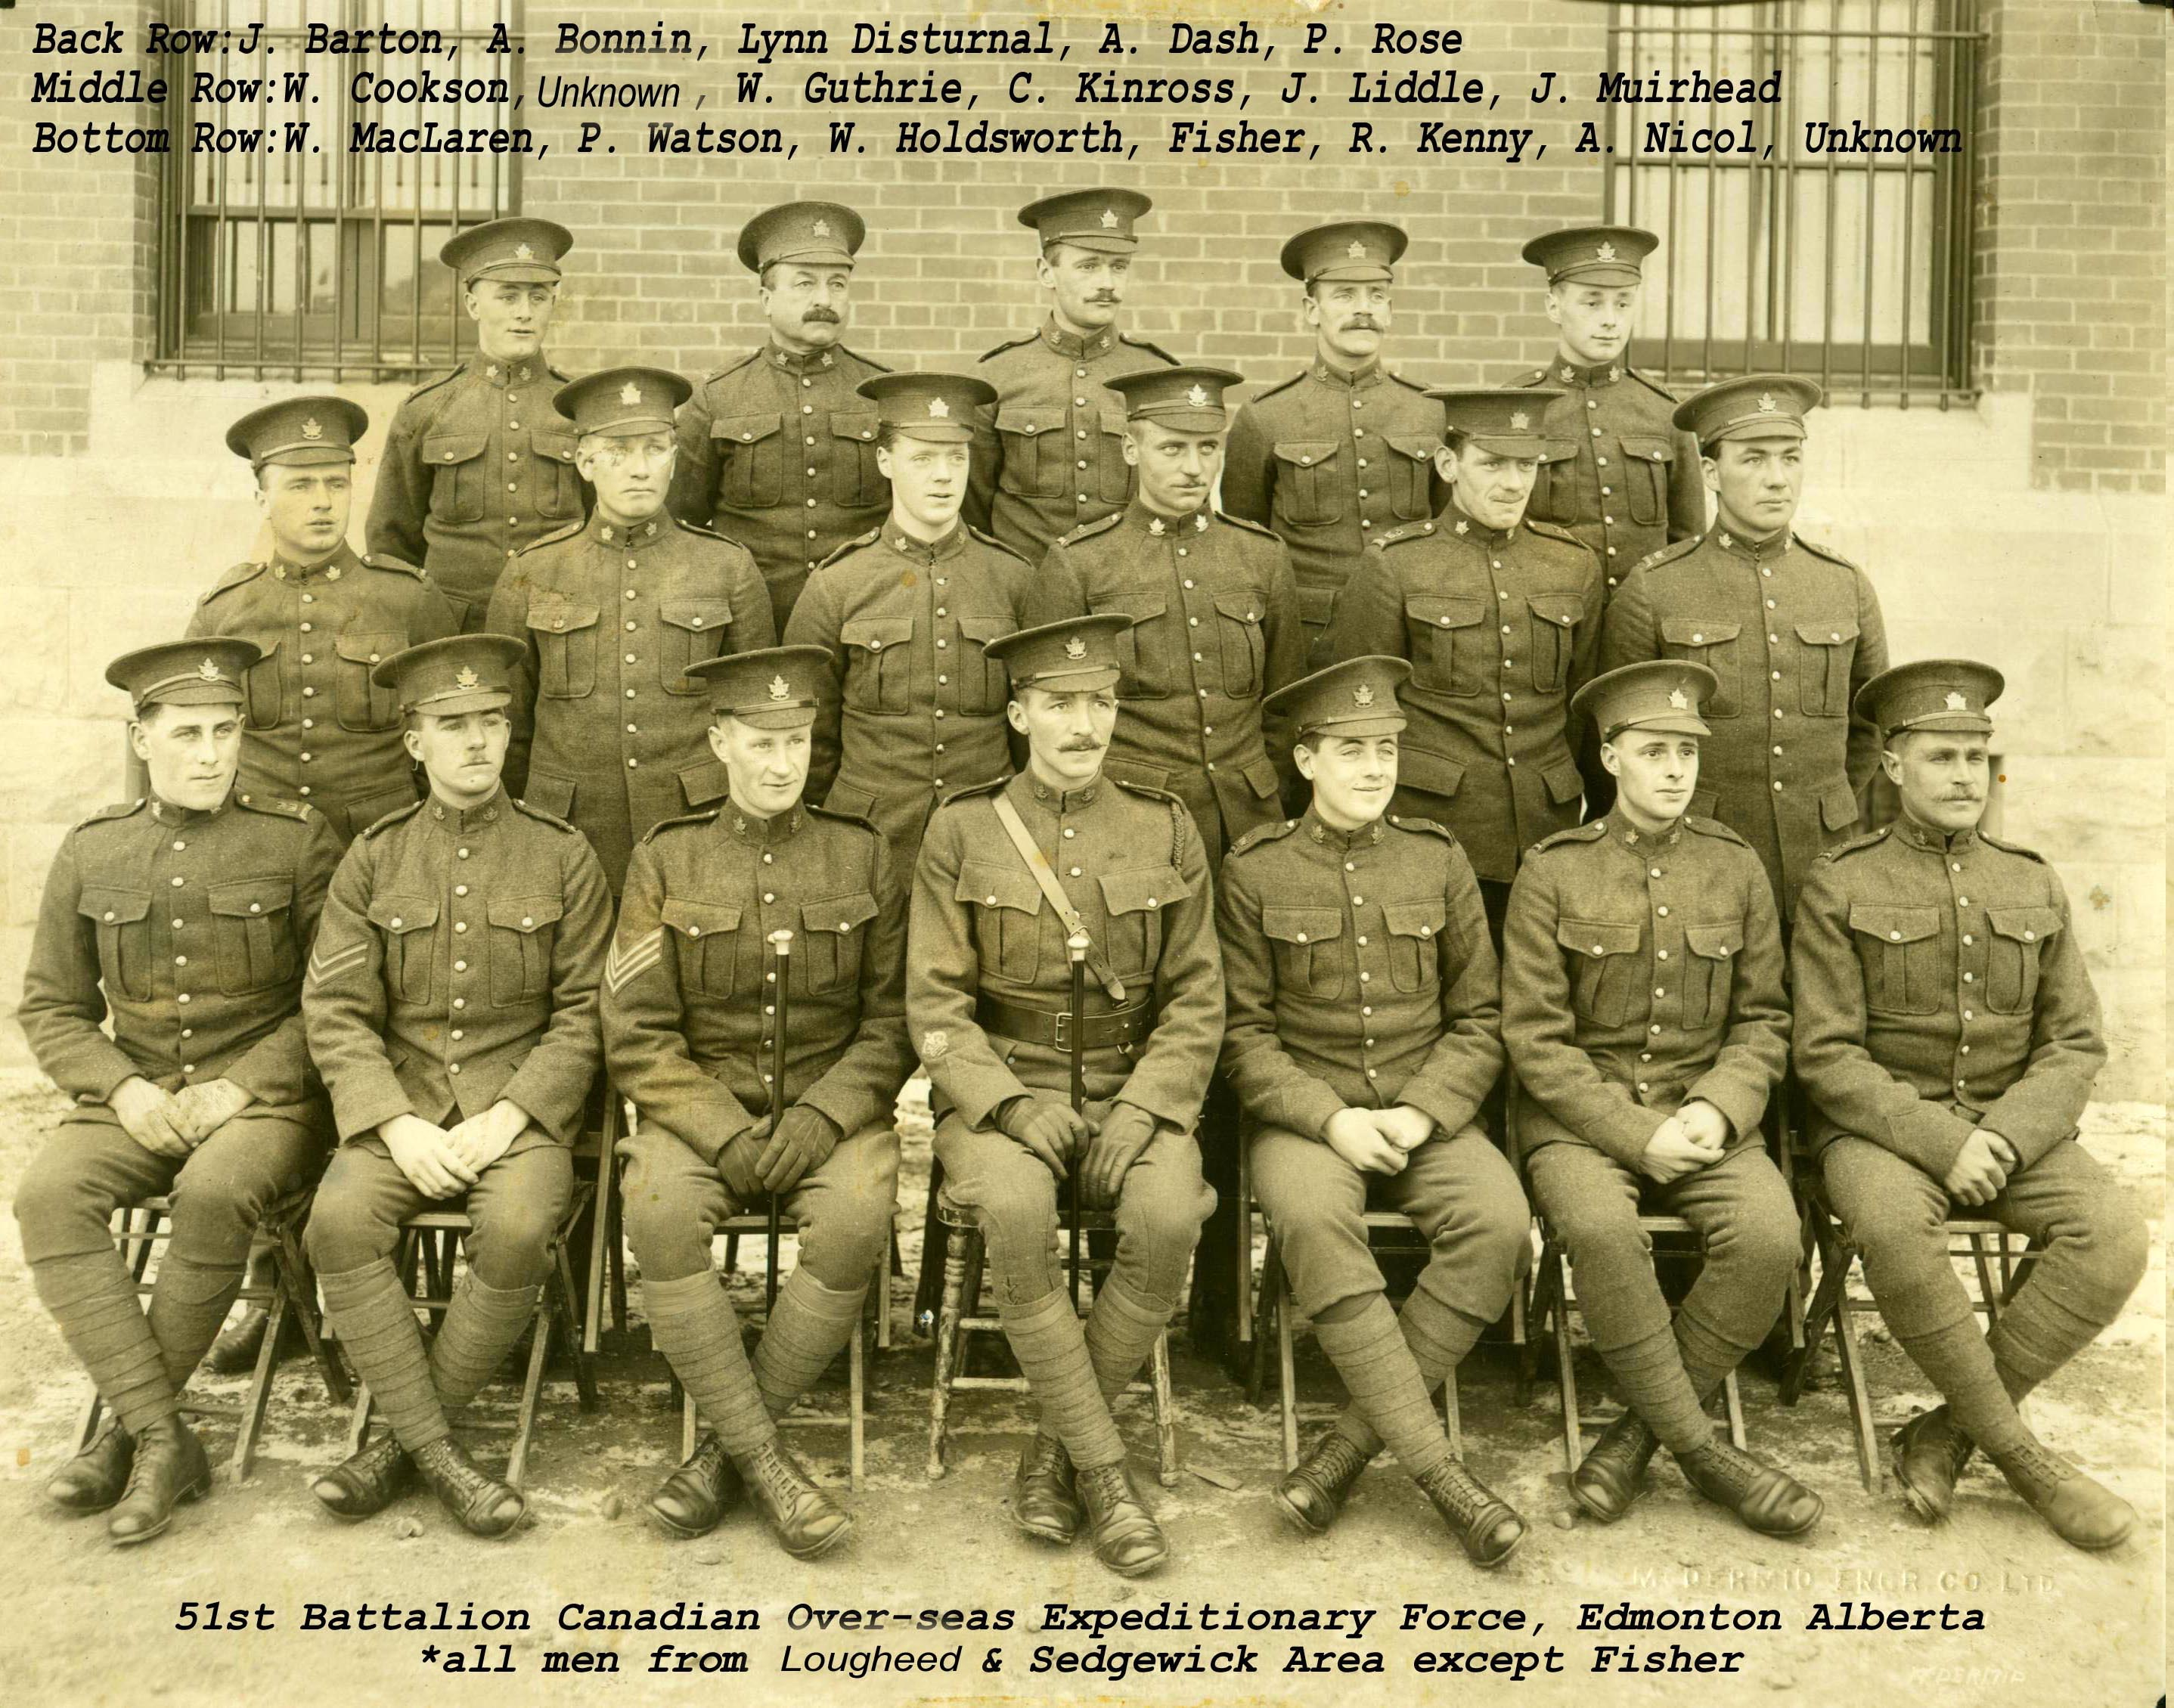 an analysis of the role of the american expeditionary force during world war i Order of battle of the united states land forces in the world war: american expeditionary forces : divisions, order of battle of the united states land forces in the world war.